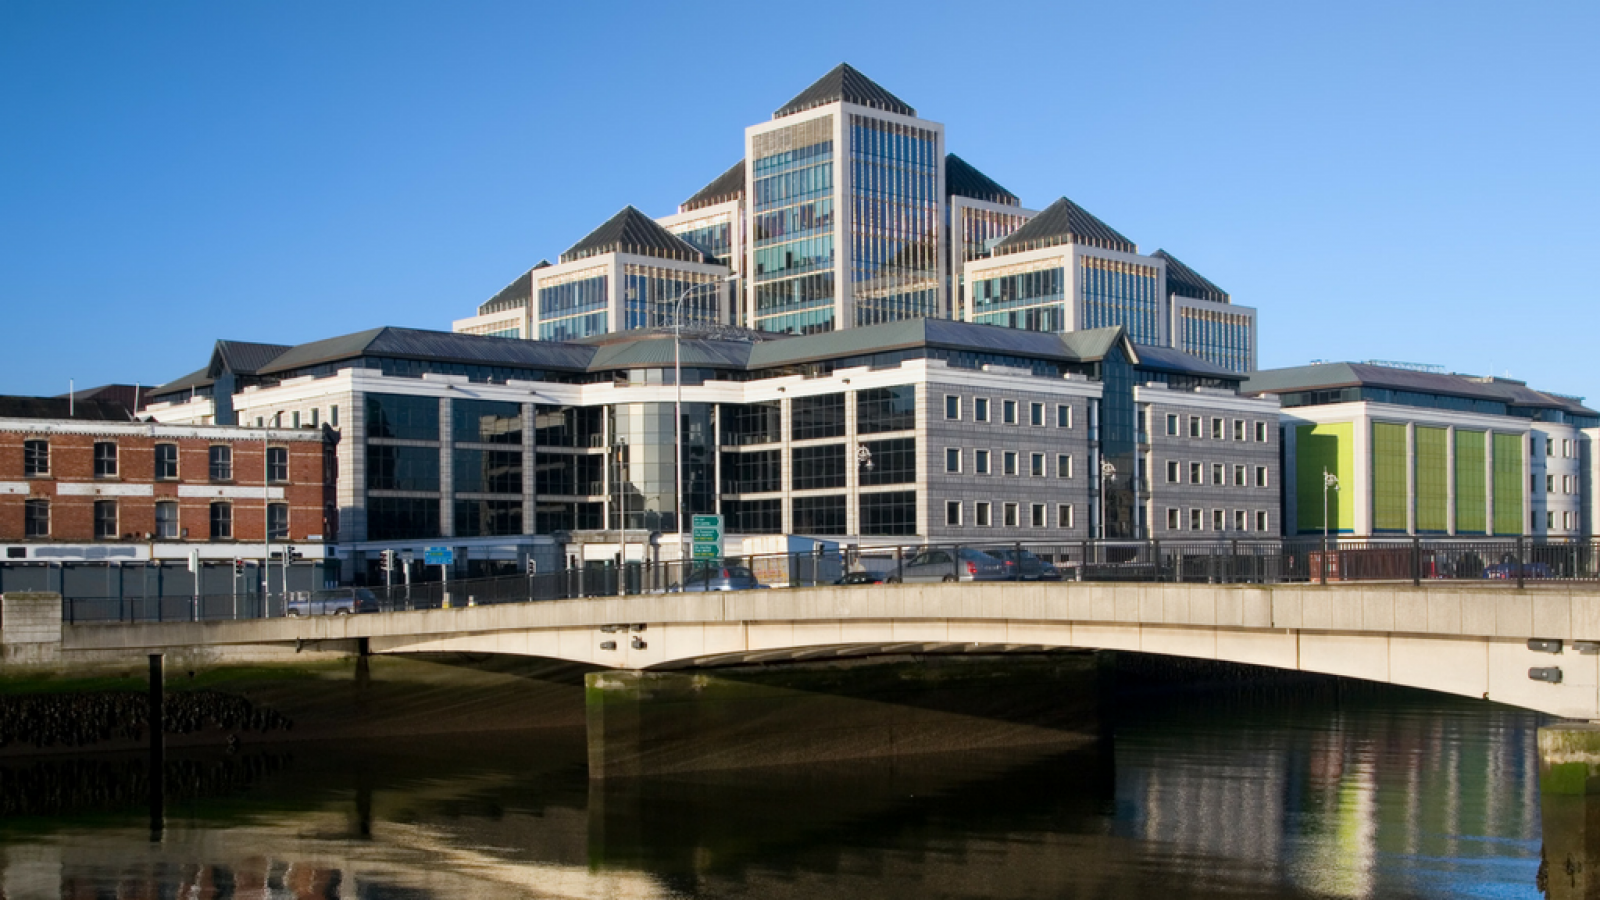 A shot of Dublin buildings taken across the river Liffey